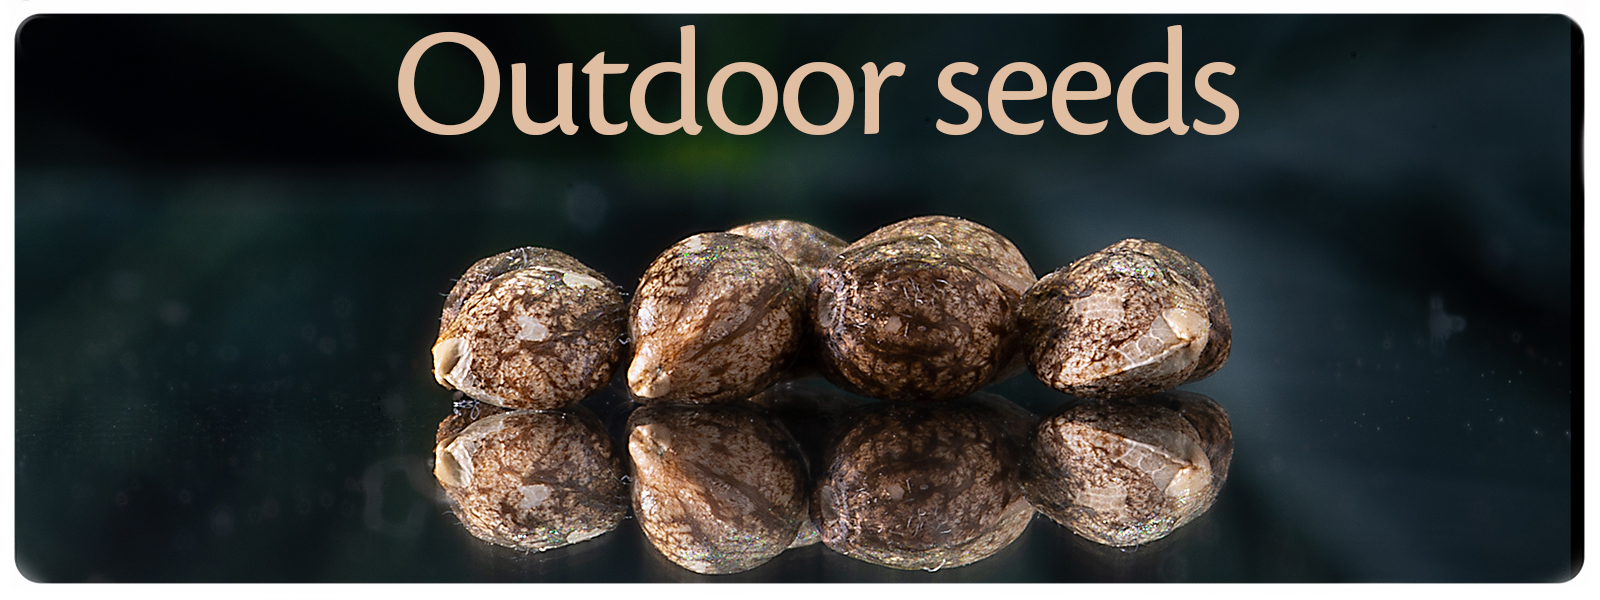 Outdoor cannabis seeds to get healthy and strong outdoor weed